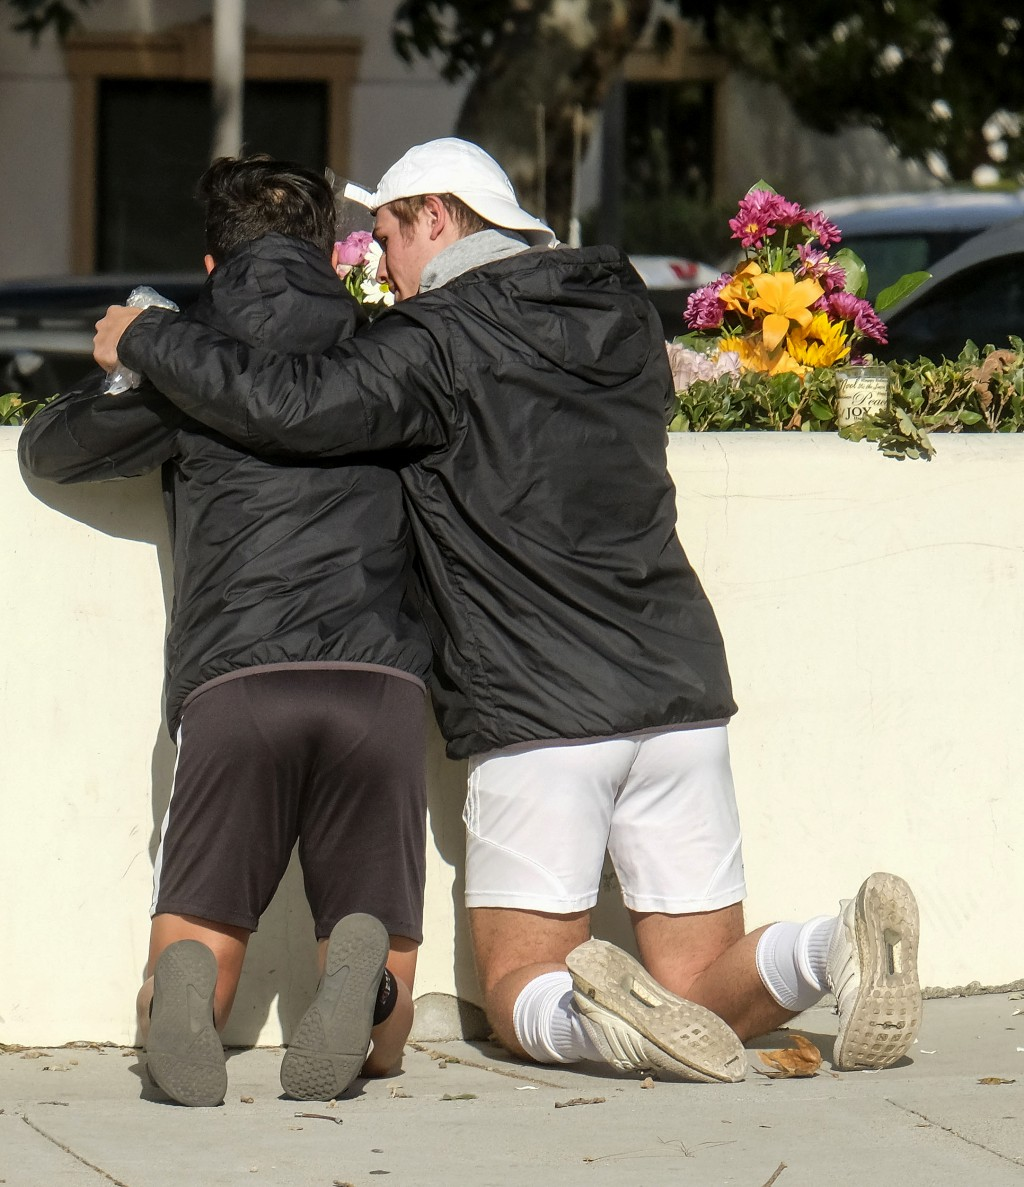 People place flowers near the scene of a mass shooting Thursday, Nov. 8, 2018, in Thousand Oaks, Calif., after a gunman opened fire Wednesday evening